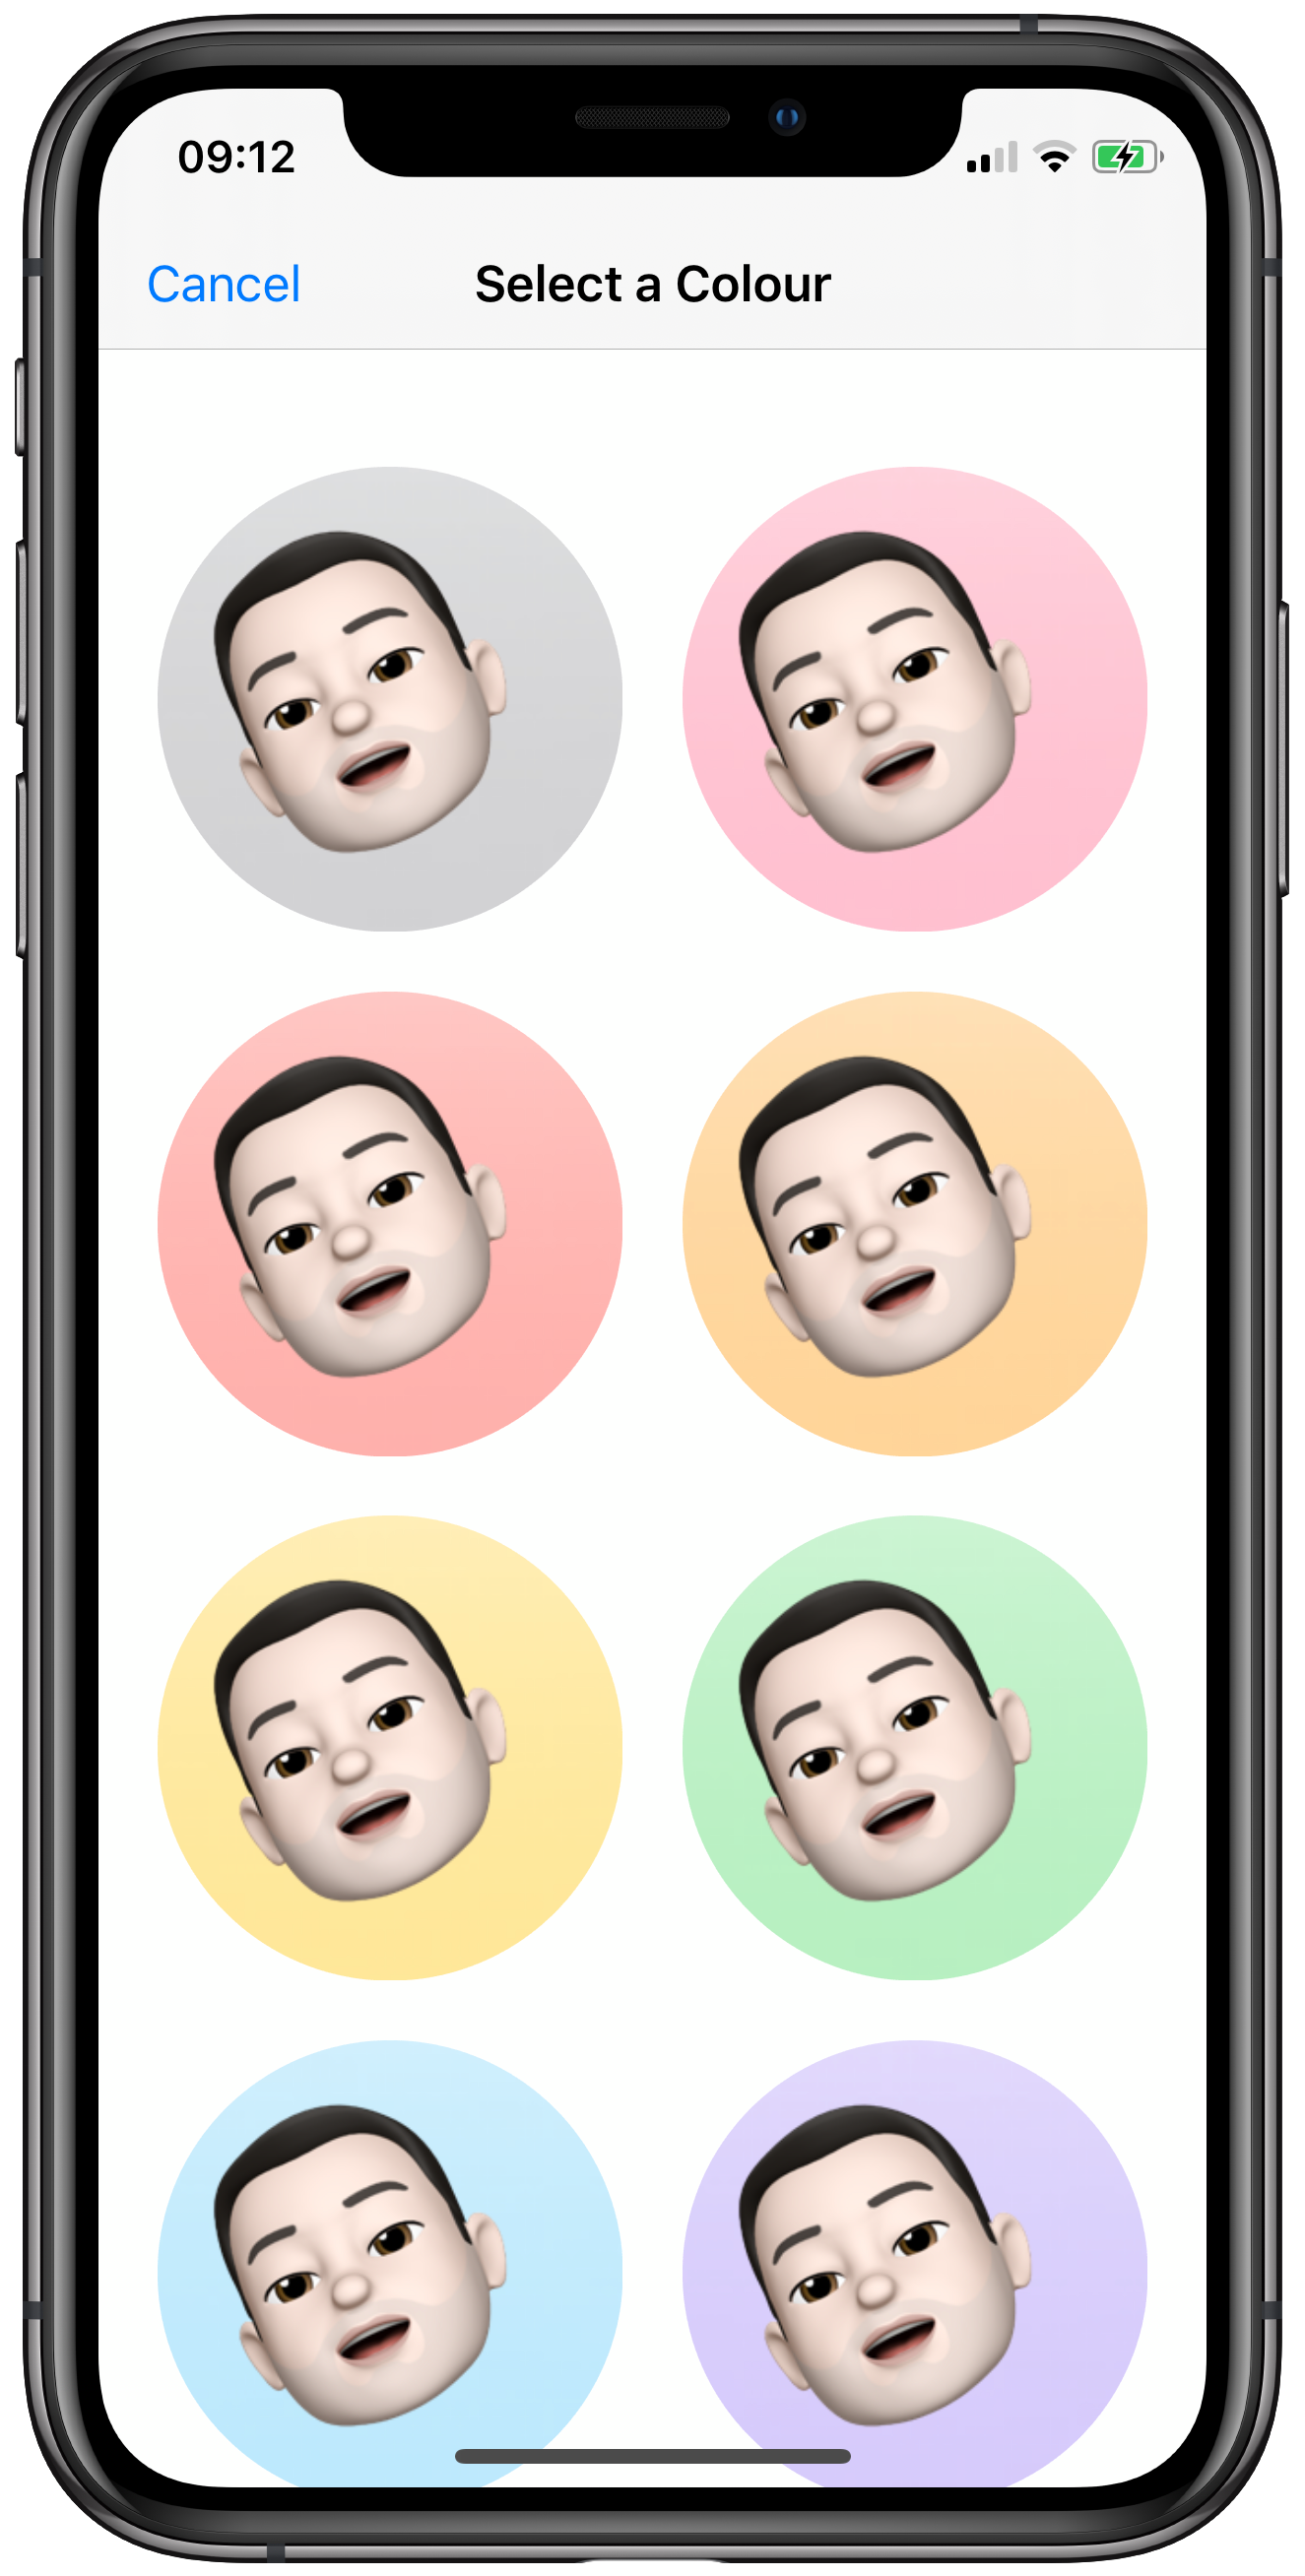 iOS 13 Messages: How to choose profile photo and display name for